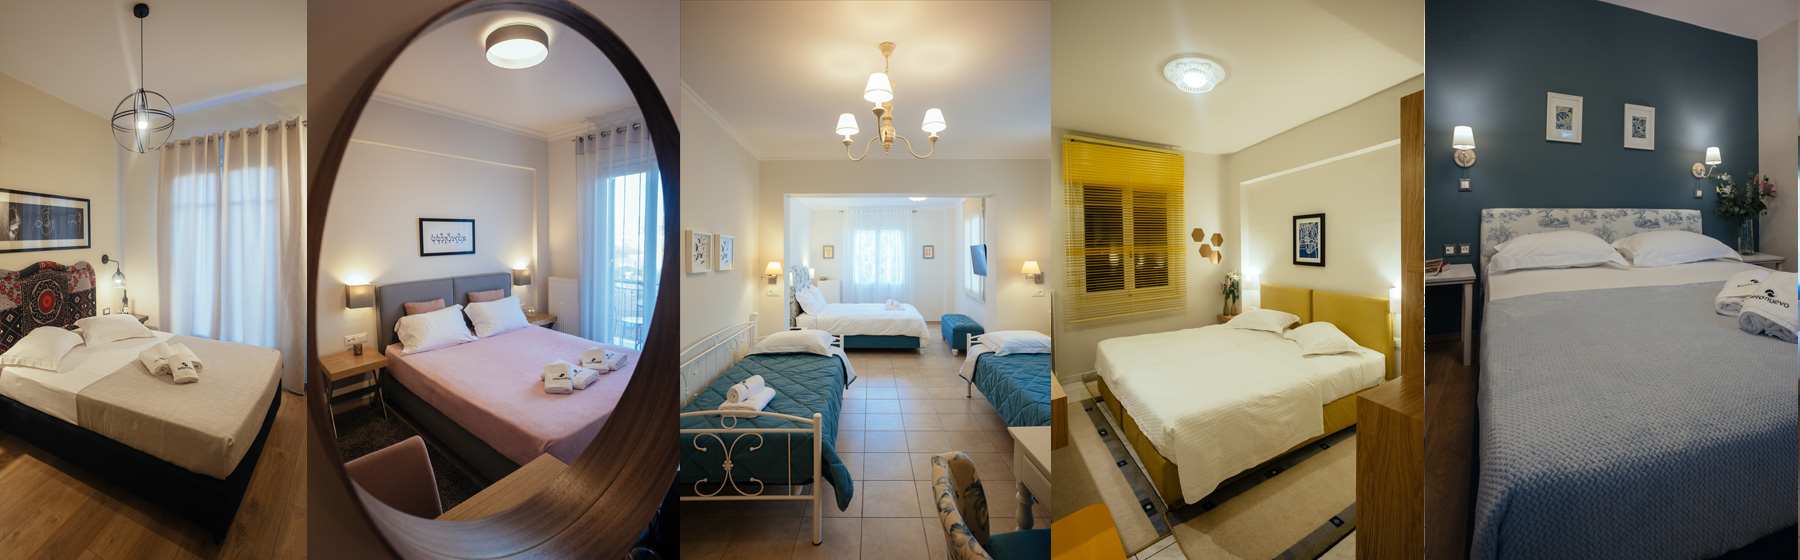 Choice of Hotel Rooms in Nafplio